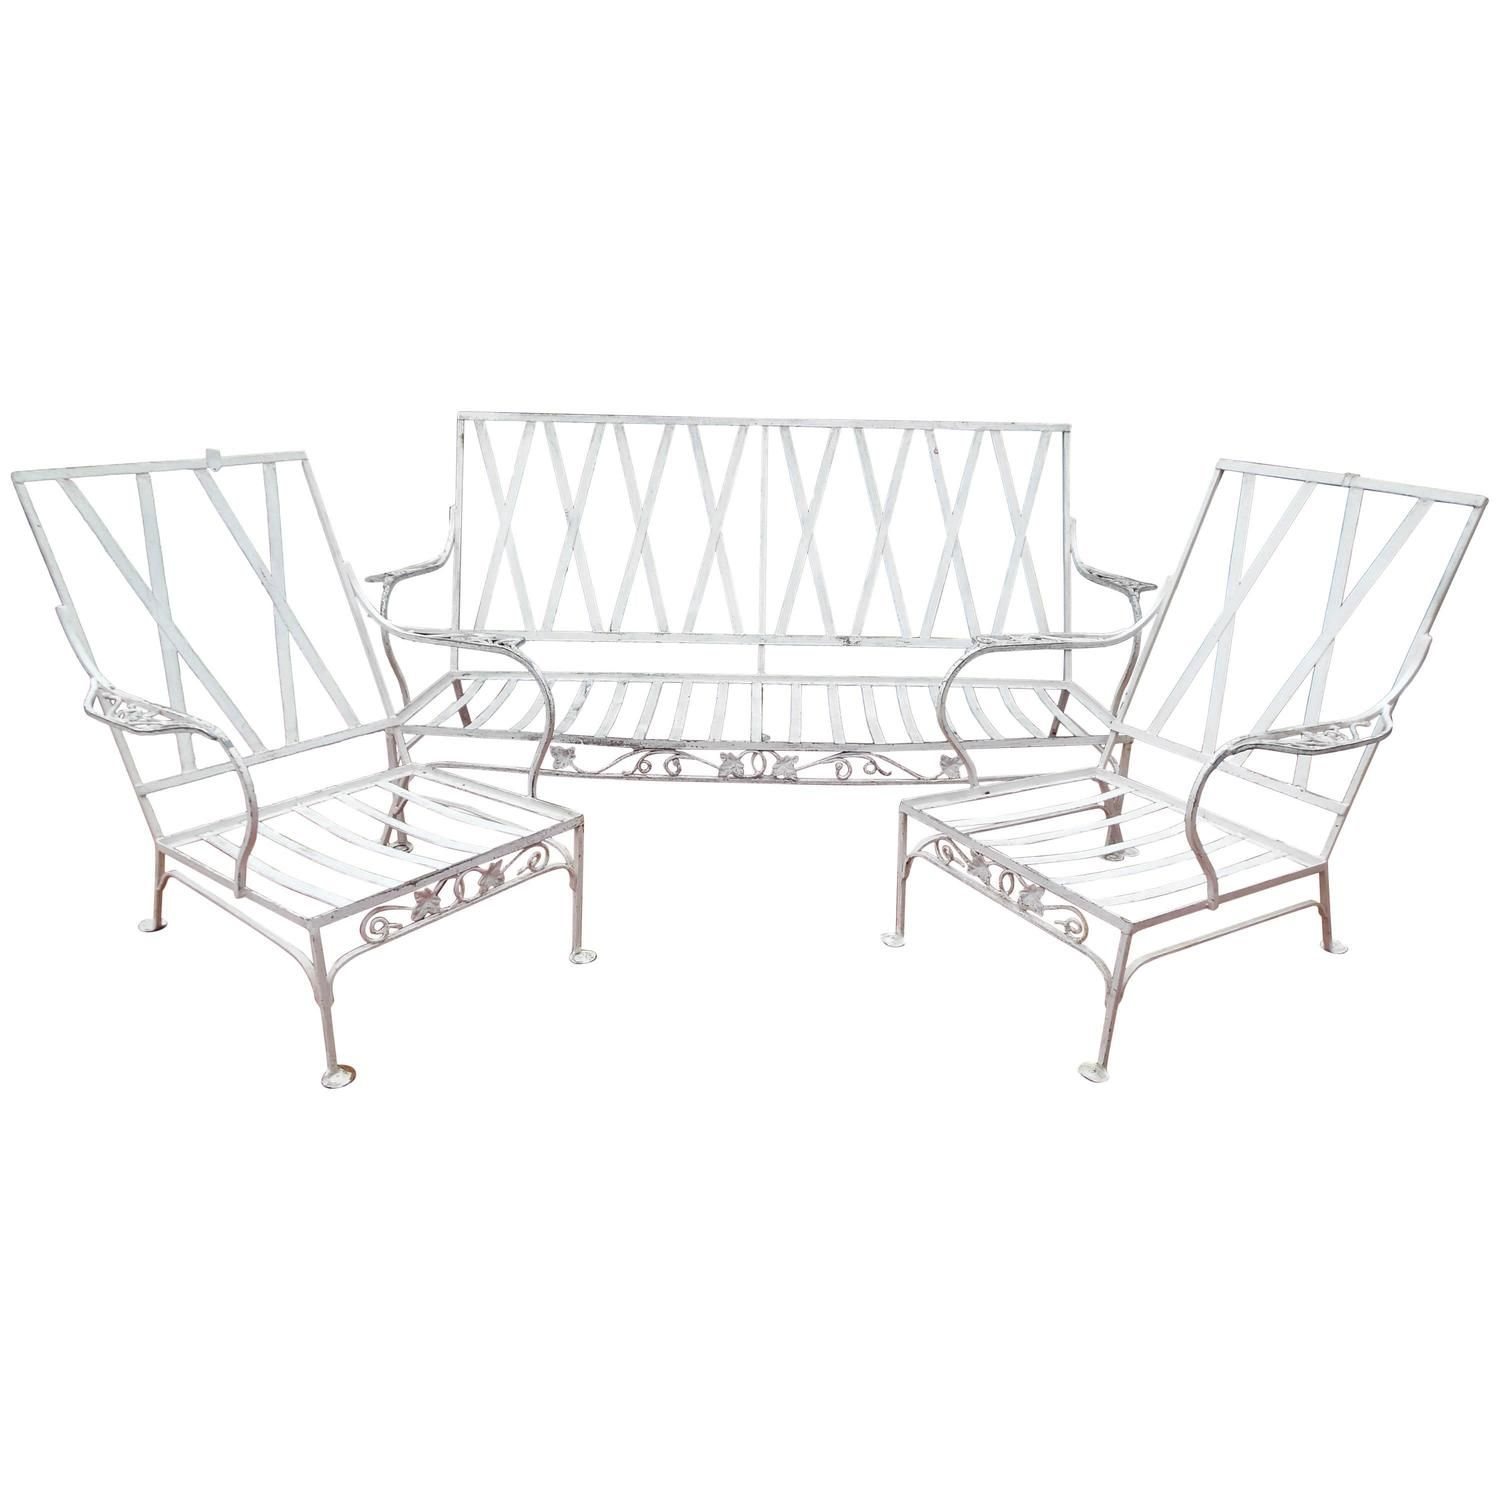 chairs picture set patio bliss of brands beautiful loveseat piece rst ottomans three and